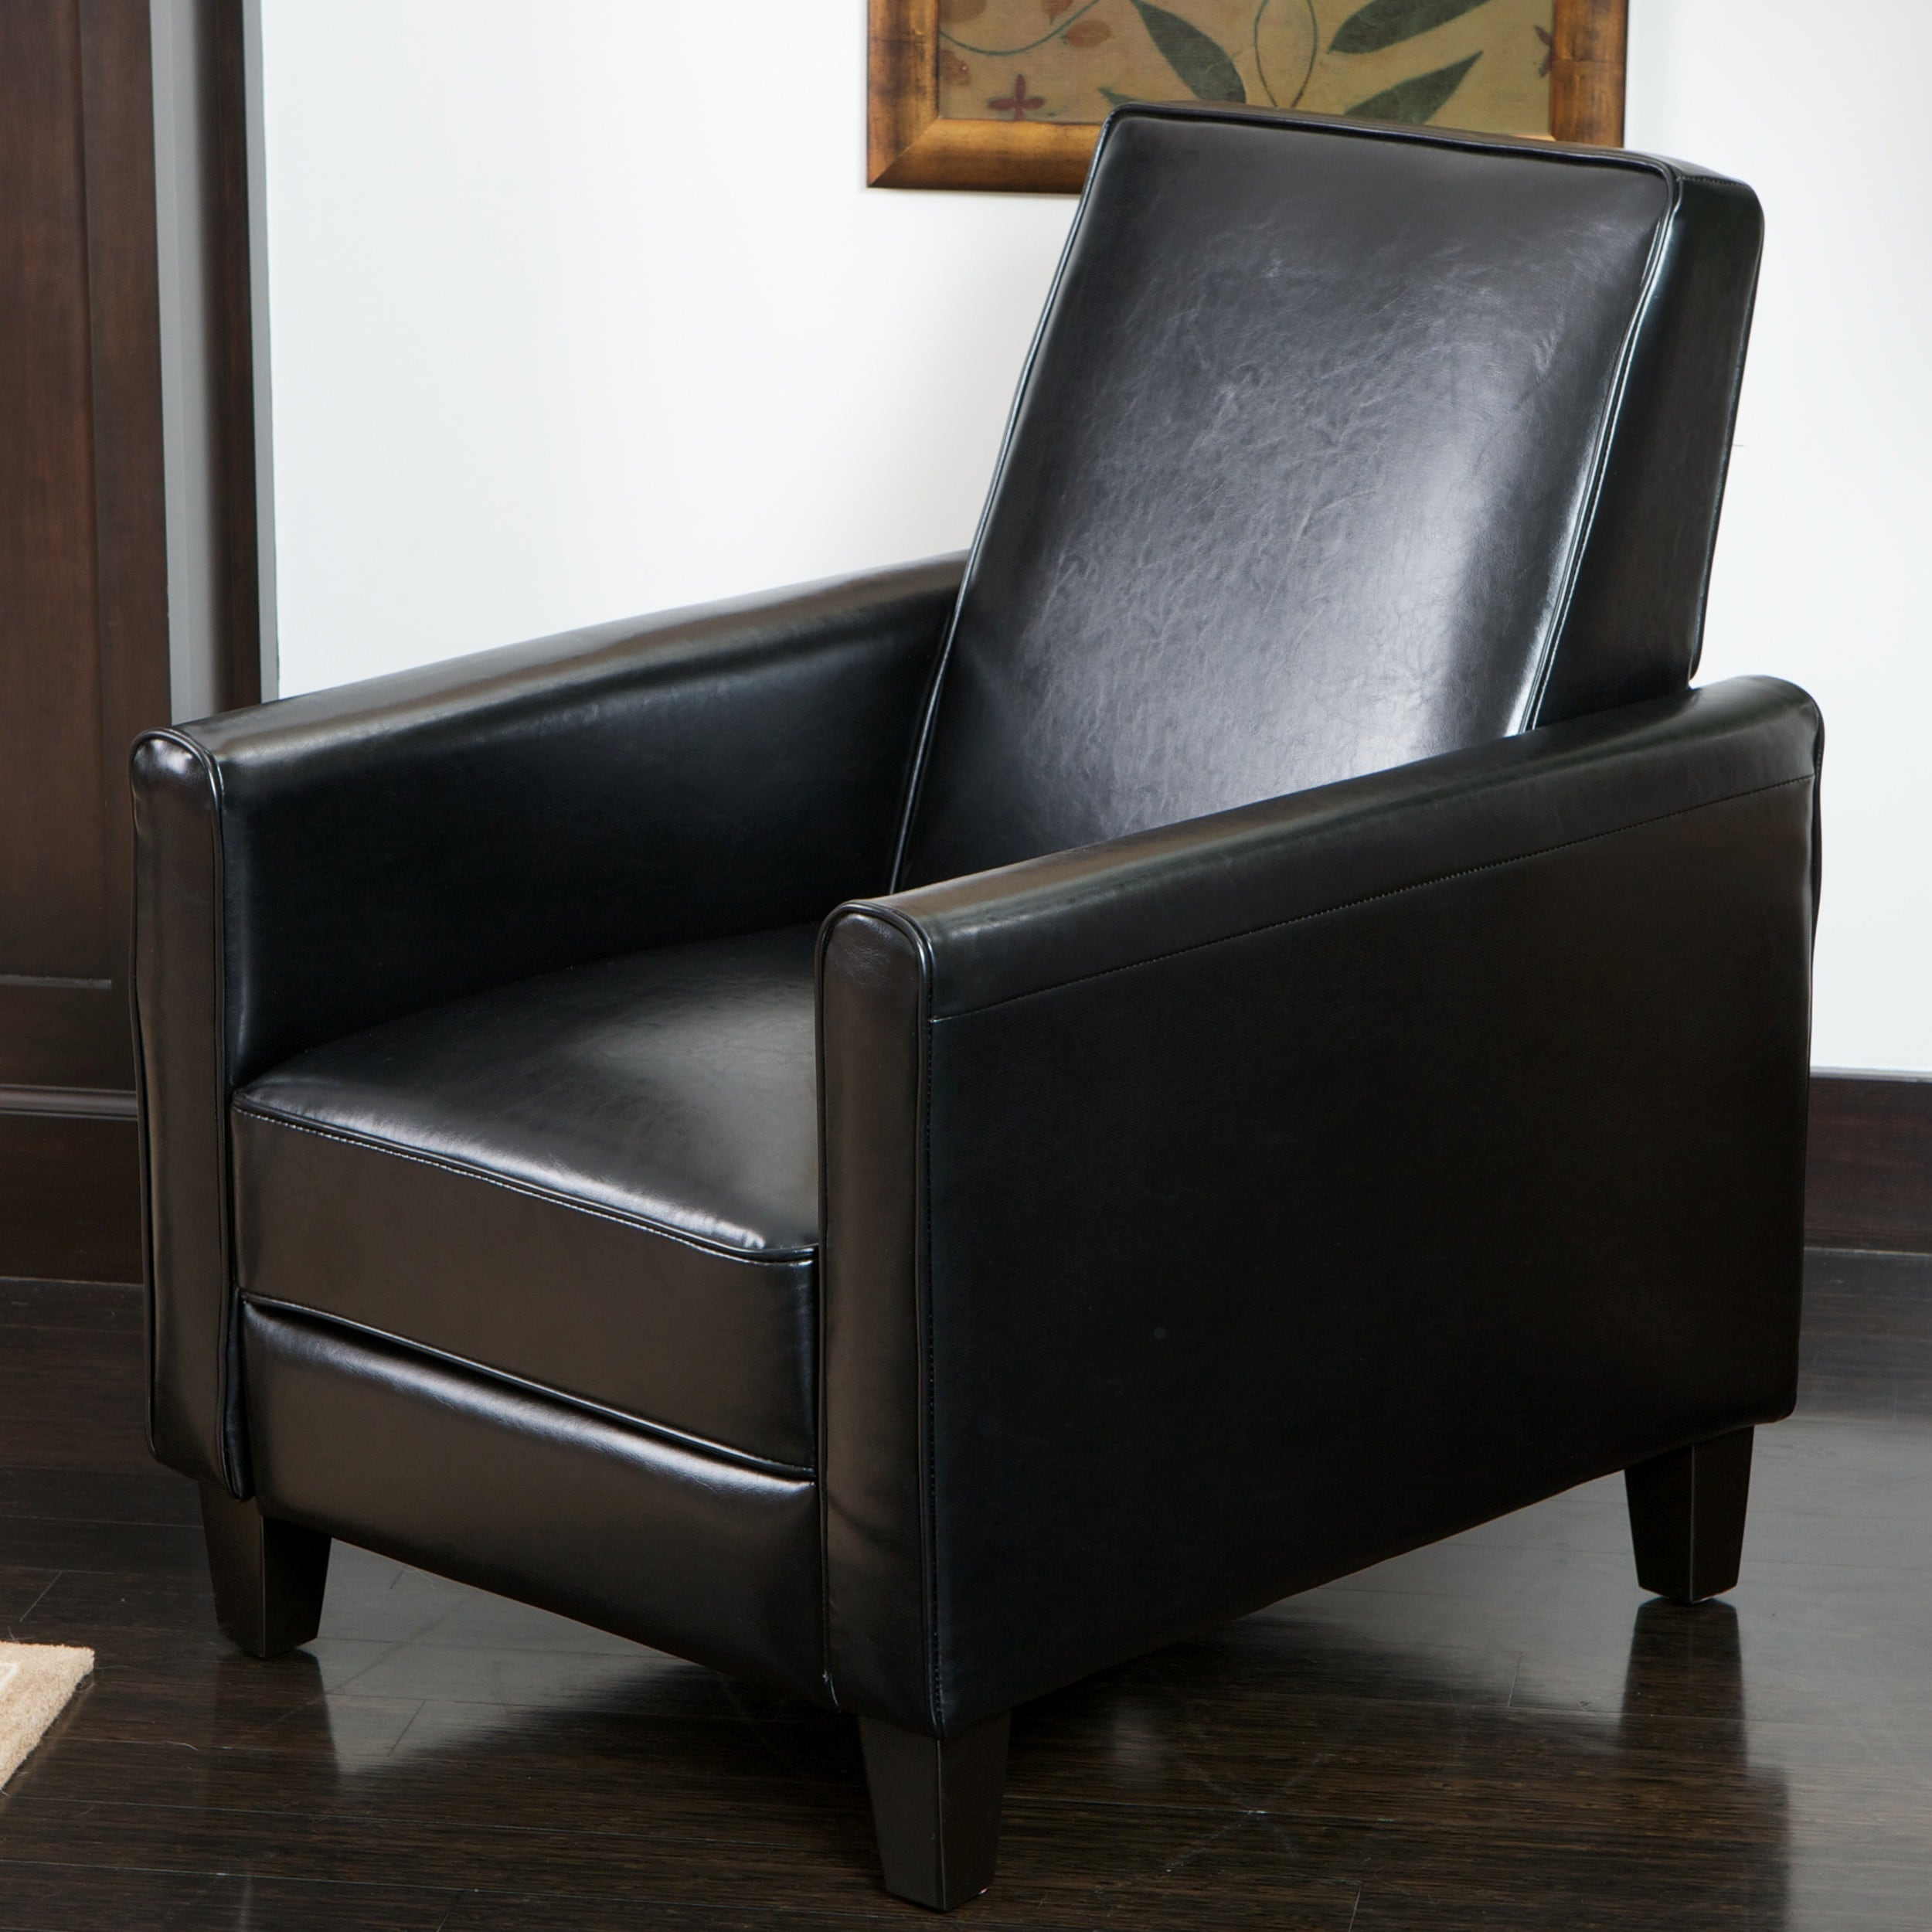 Charmant Shop Darvis Black Bonded Leather Recliner Club Chair By Christopher Knight  Home   Free Shipping Today   Overstock.com   7818804